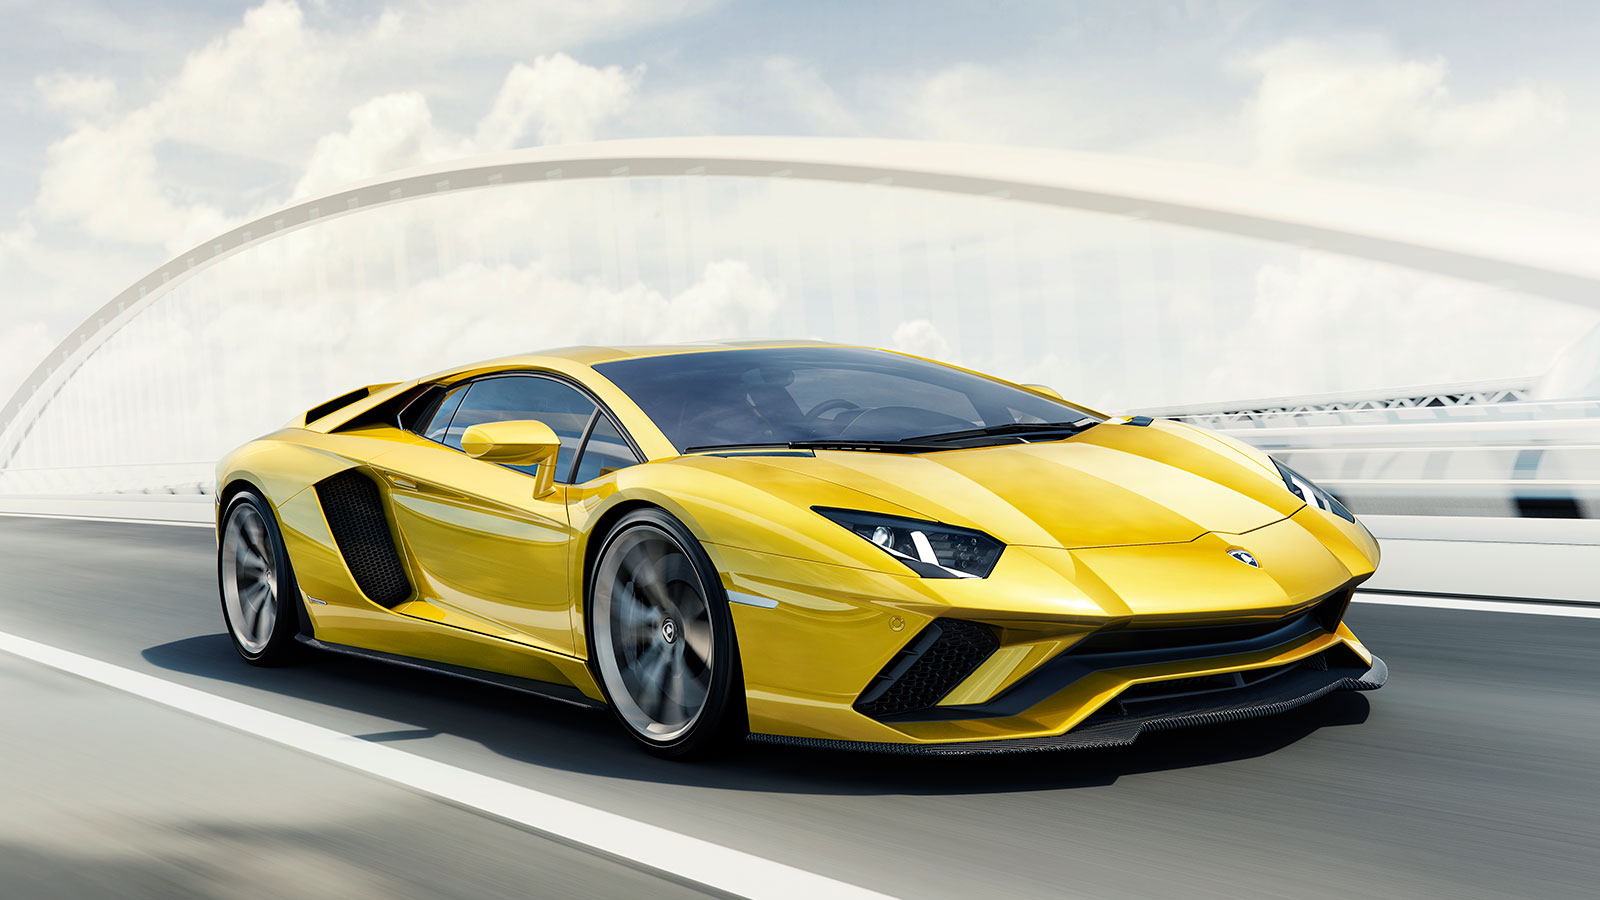 Lamborghini Aventador S Coupe - The Icon Reborn image 35